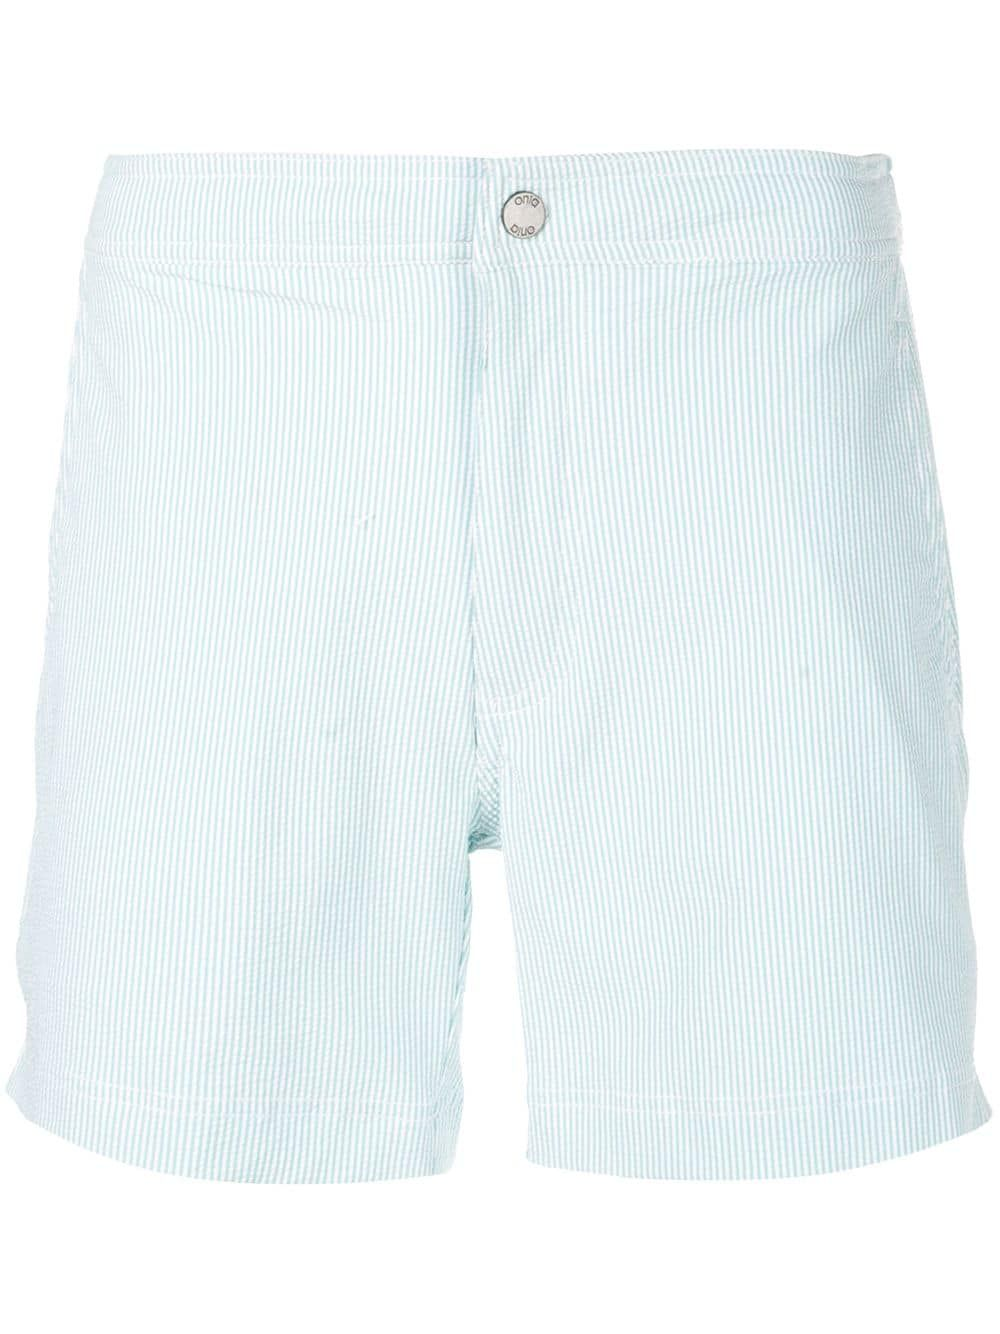 81fc9348ae087 ONIA ONIA CALDER SWIMMING TRUNKS - BLUE. #onia #cloth | Onia in 2019 ...